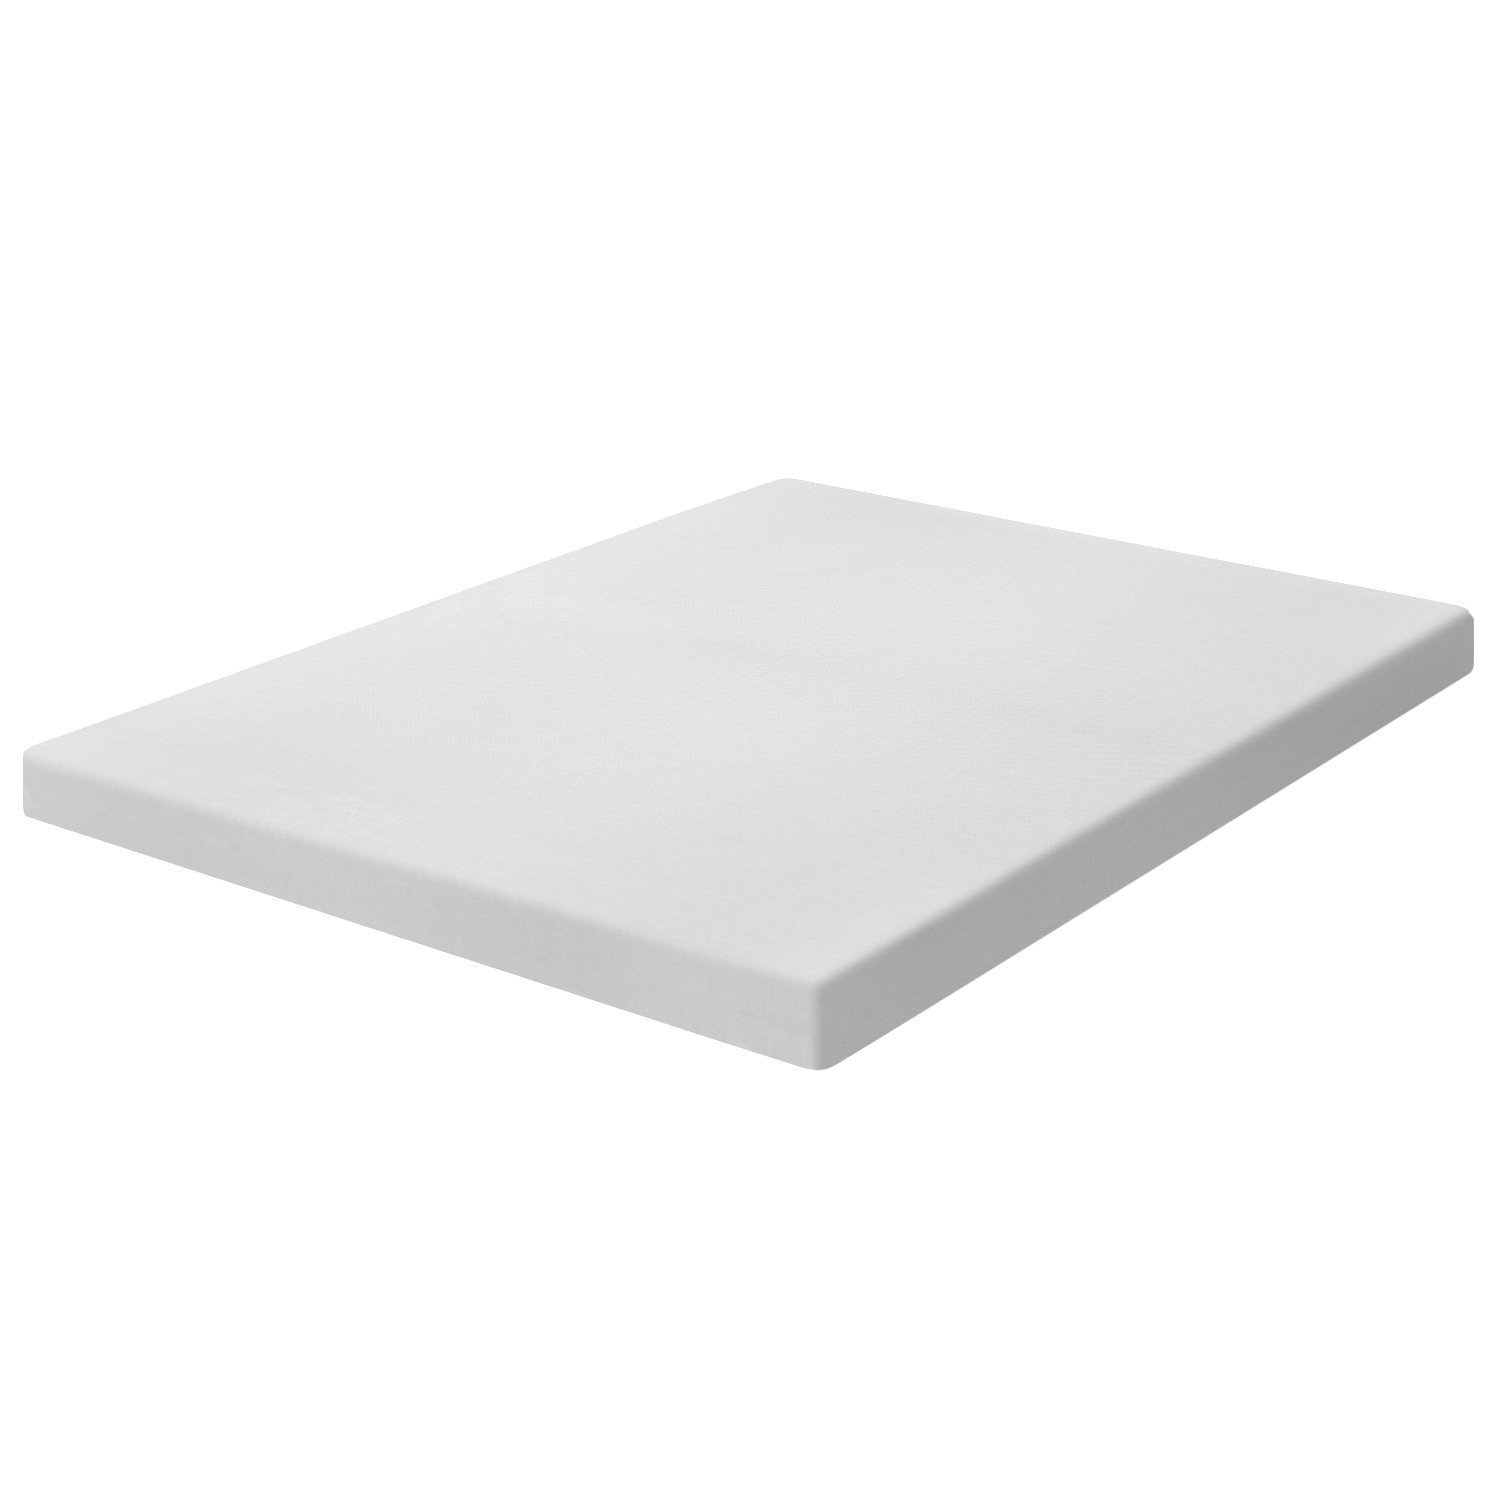 Amazoncom Best Price Mattress 4Inch Memory Foam Mattress Topper